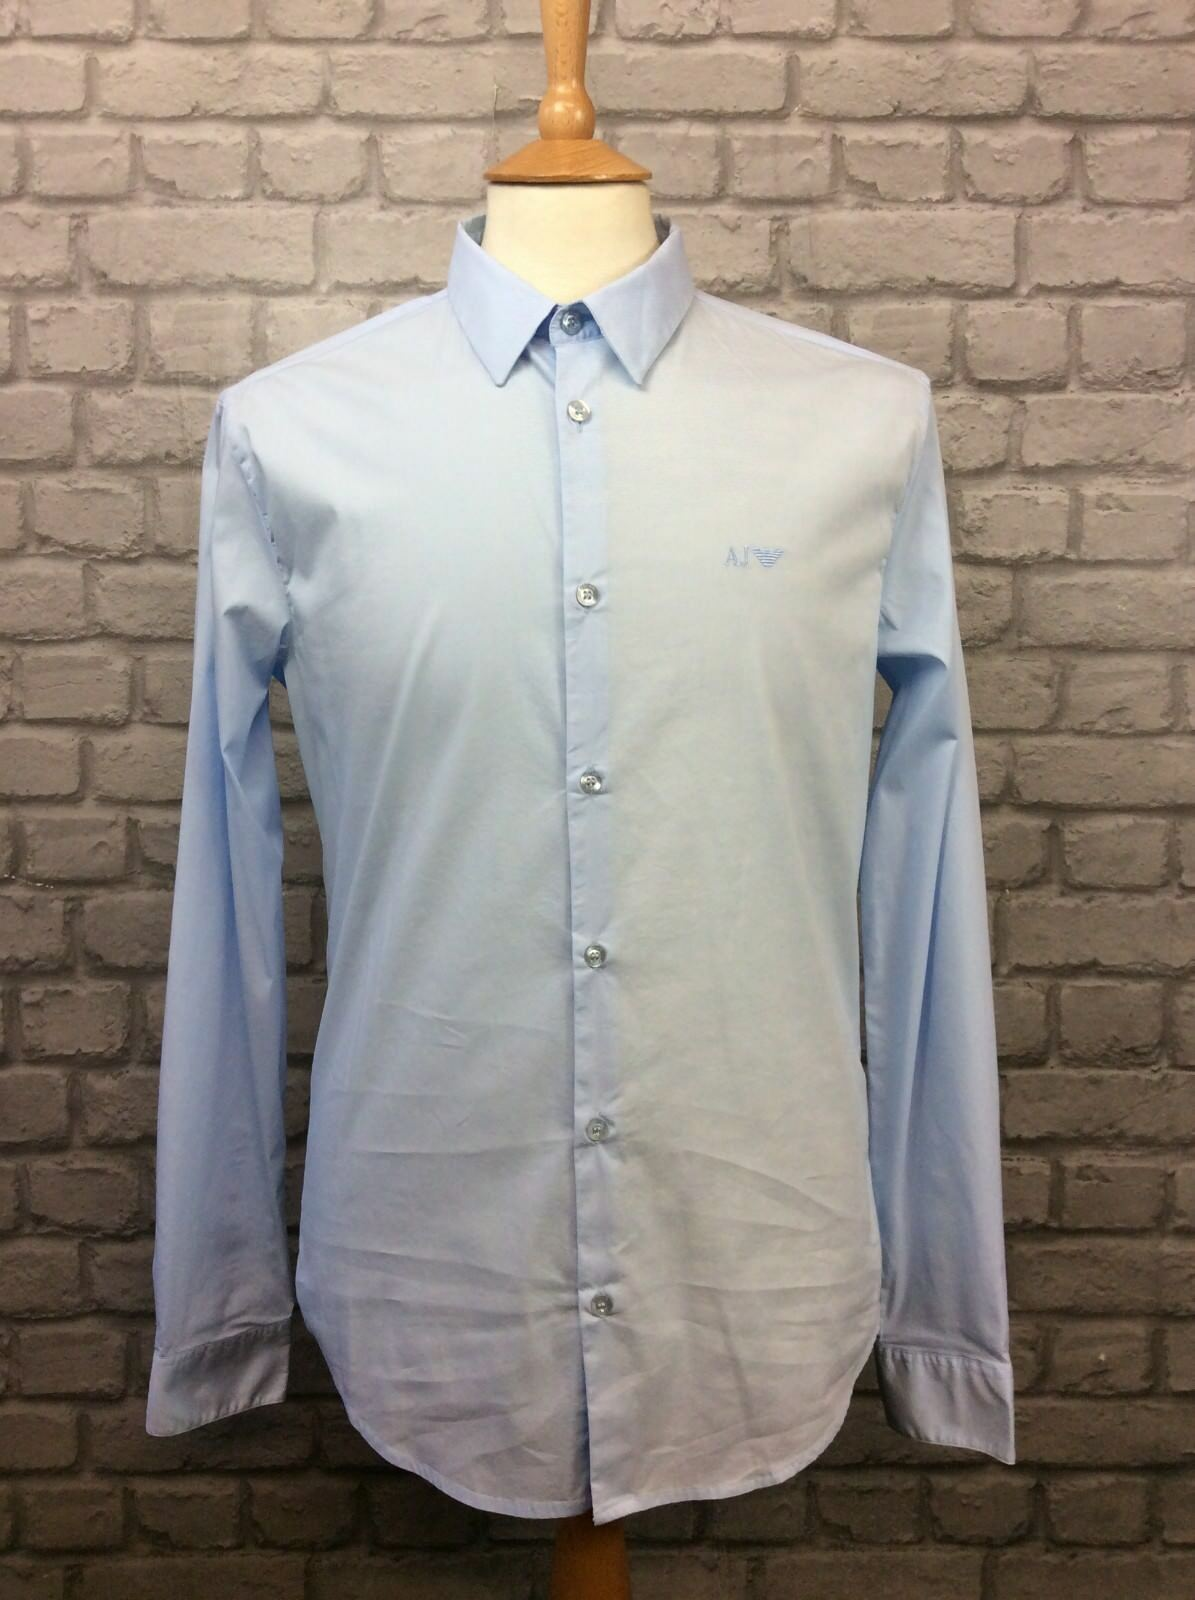 ARMARNI JEANS MENS UK L SLIM FIT SKY blueE STRETCH COTTON DETAIL SHIRT RRP